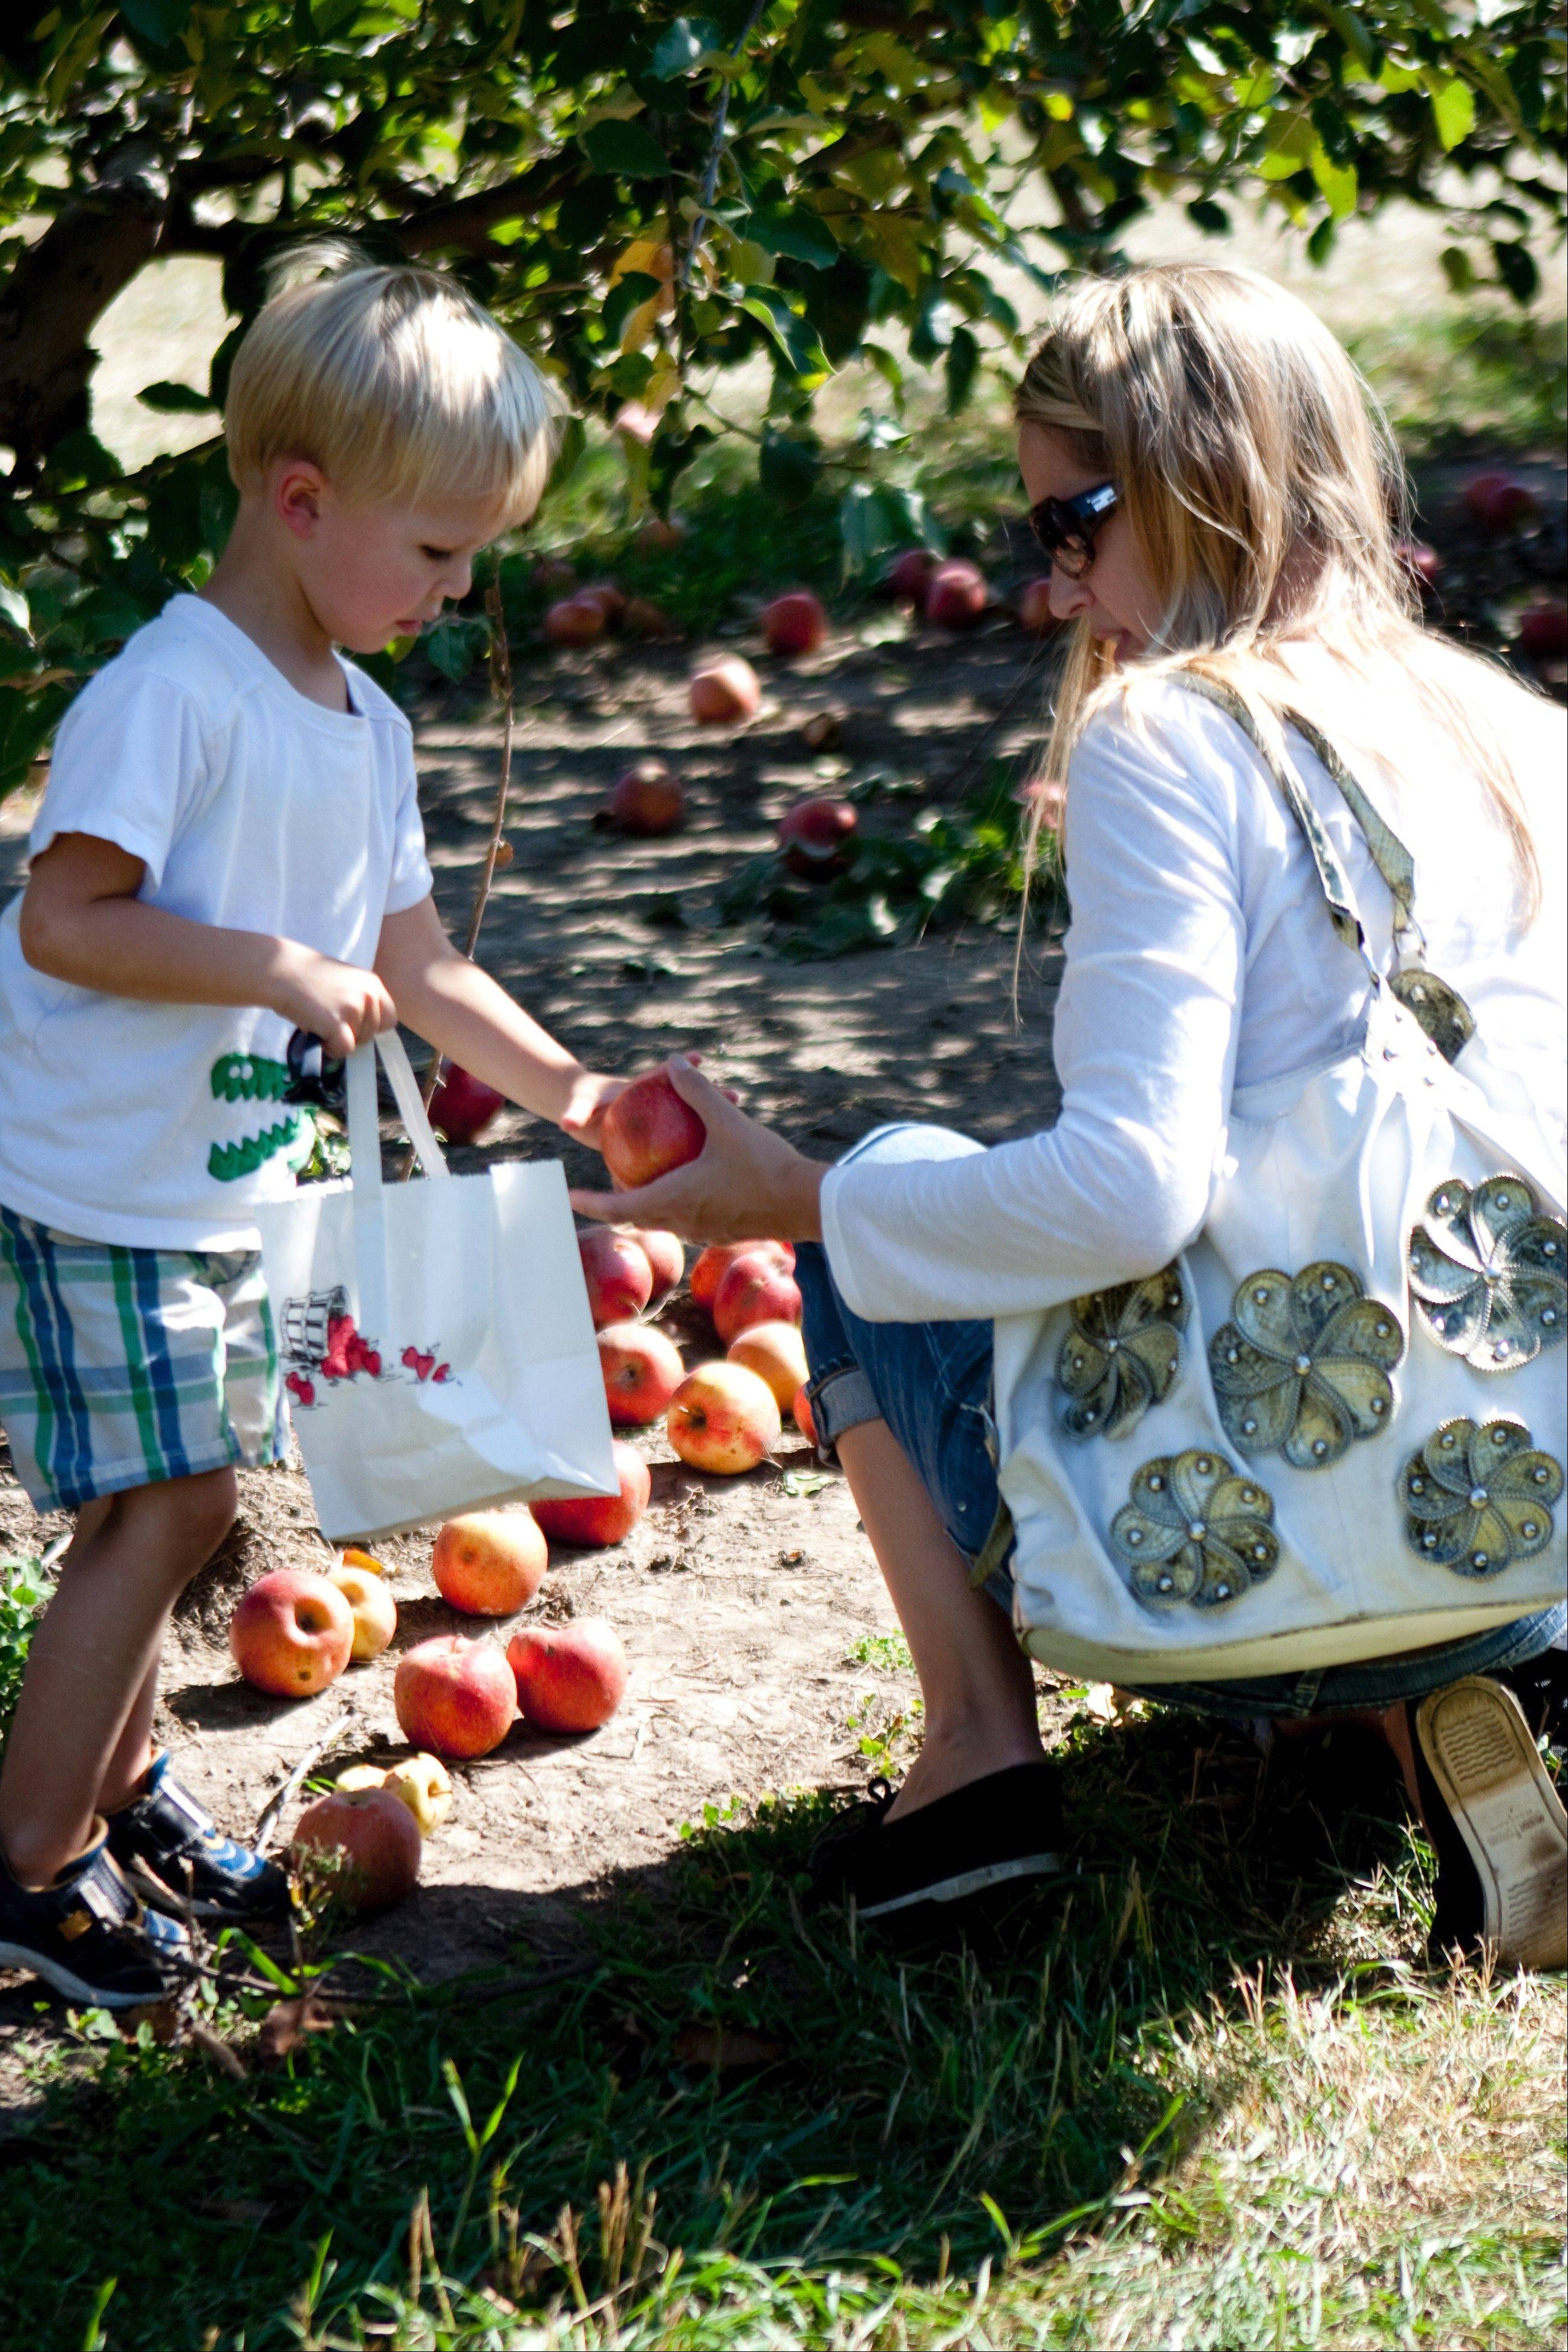 Visiting an apple orchard in the fall is a tradition for some families.